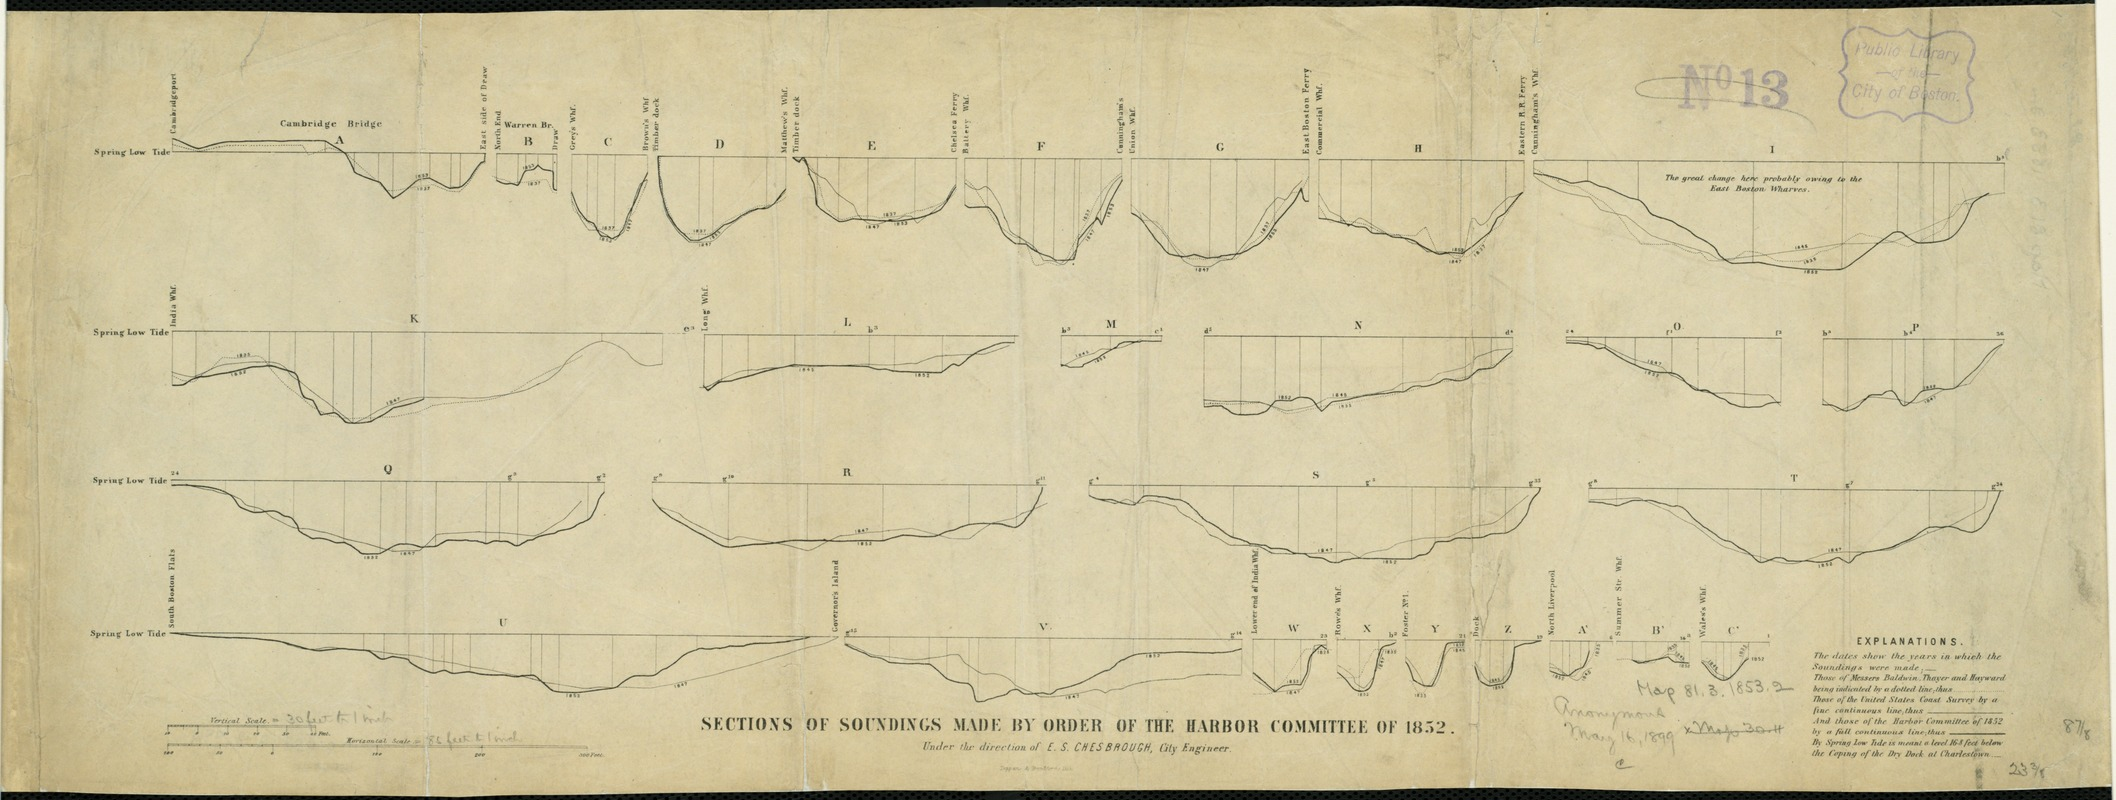 Sections of soundings made by order of the Harbor Committee of 1852